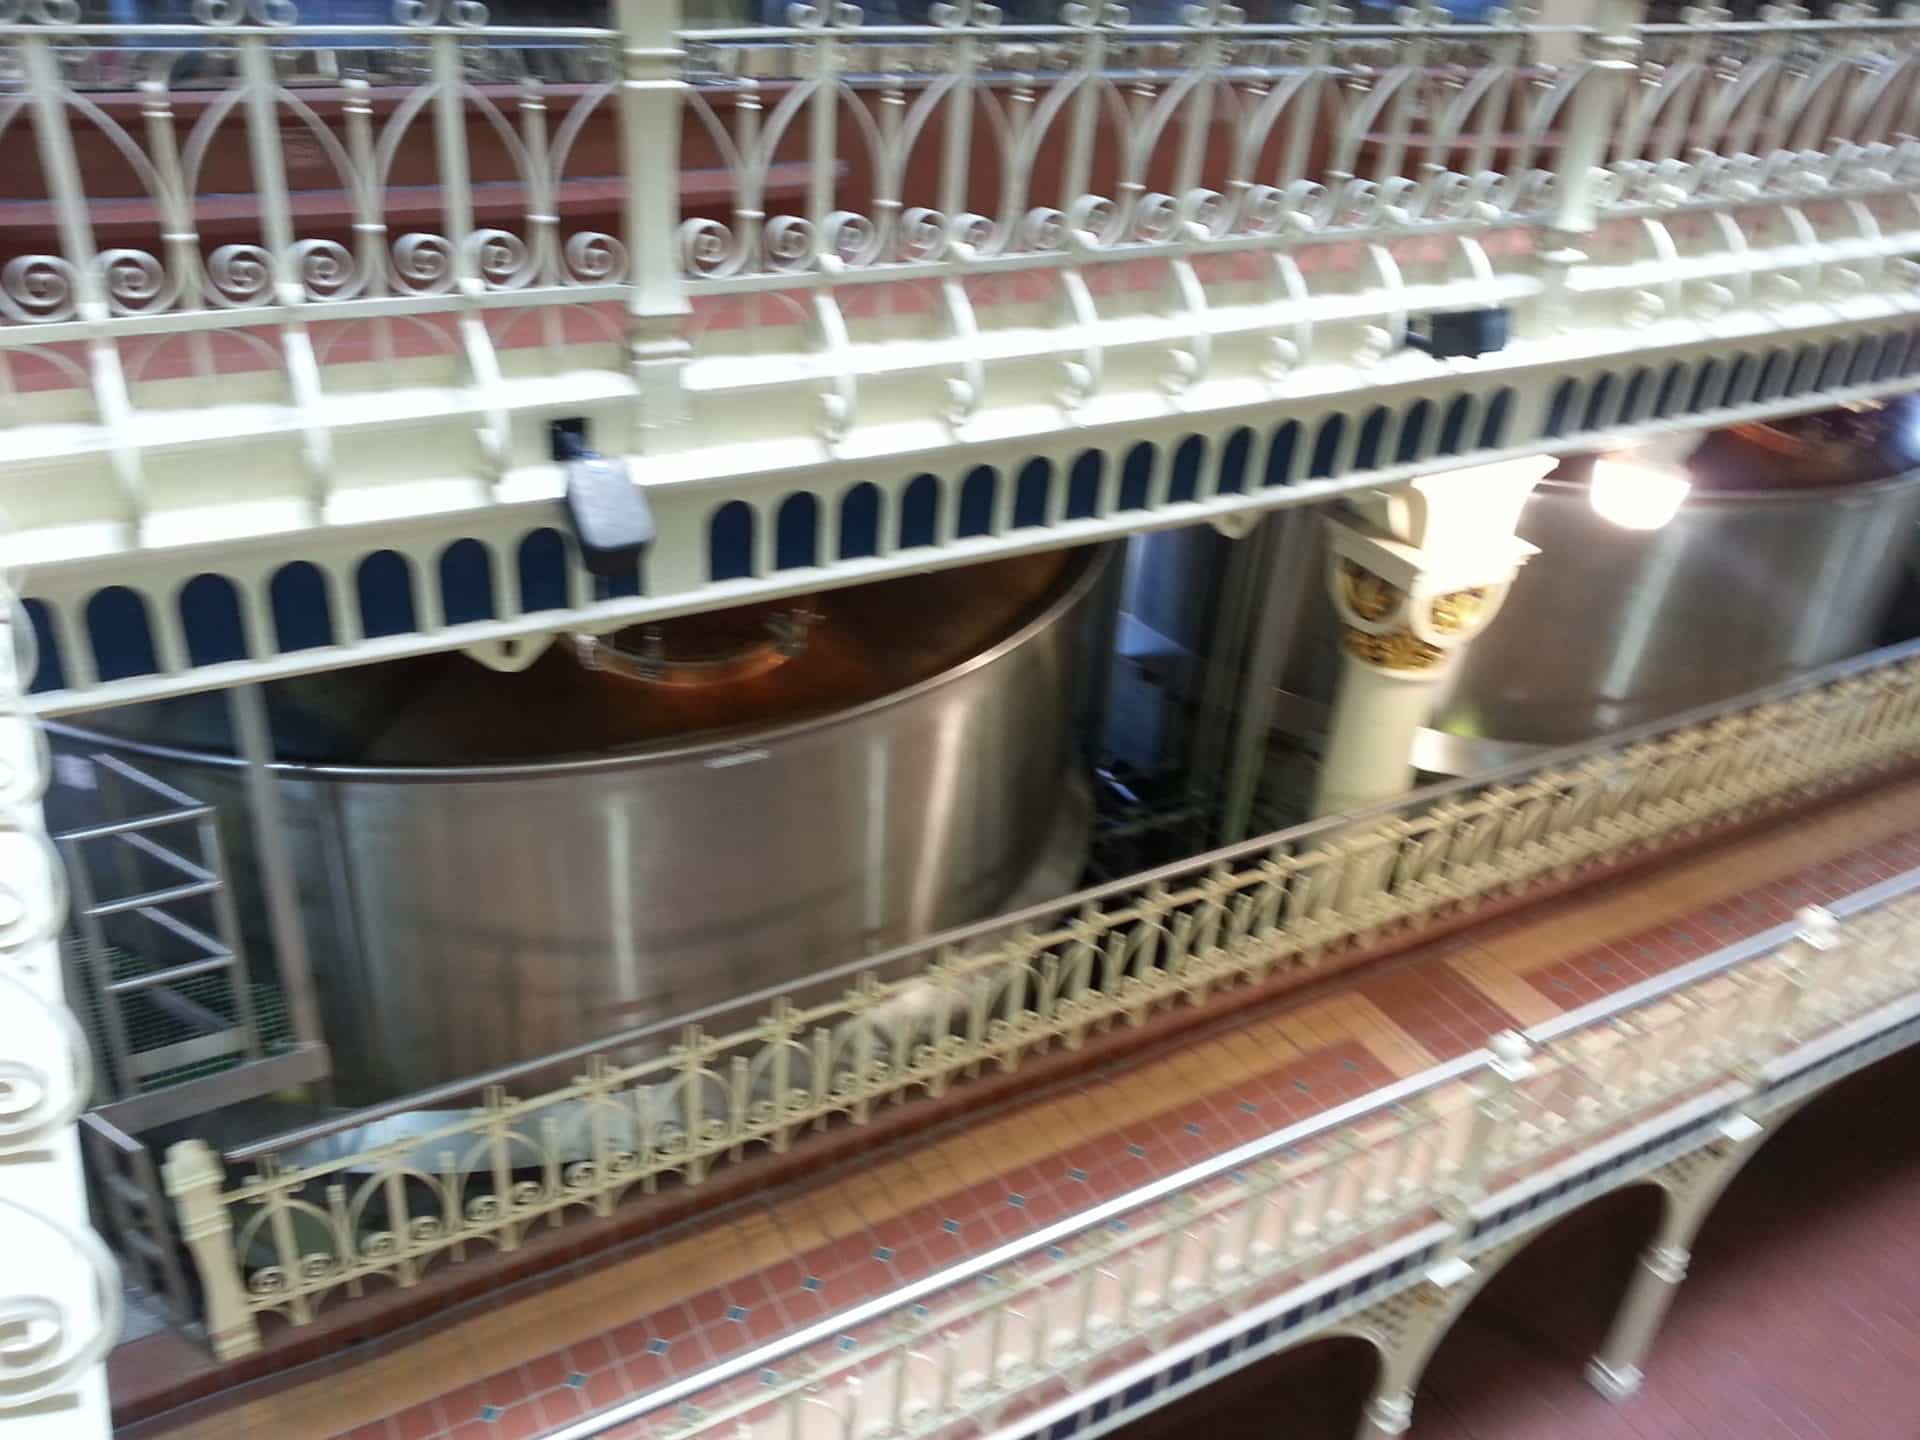 Budweiser Brewery Tour, St. Louis, MO - Making Beer